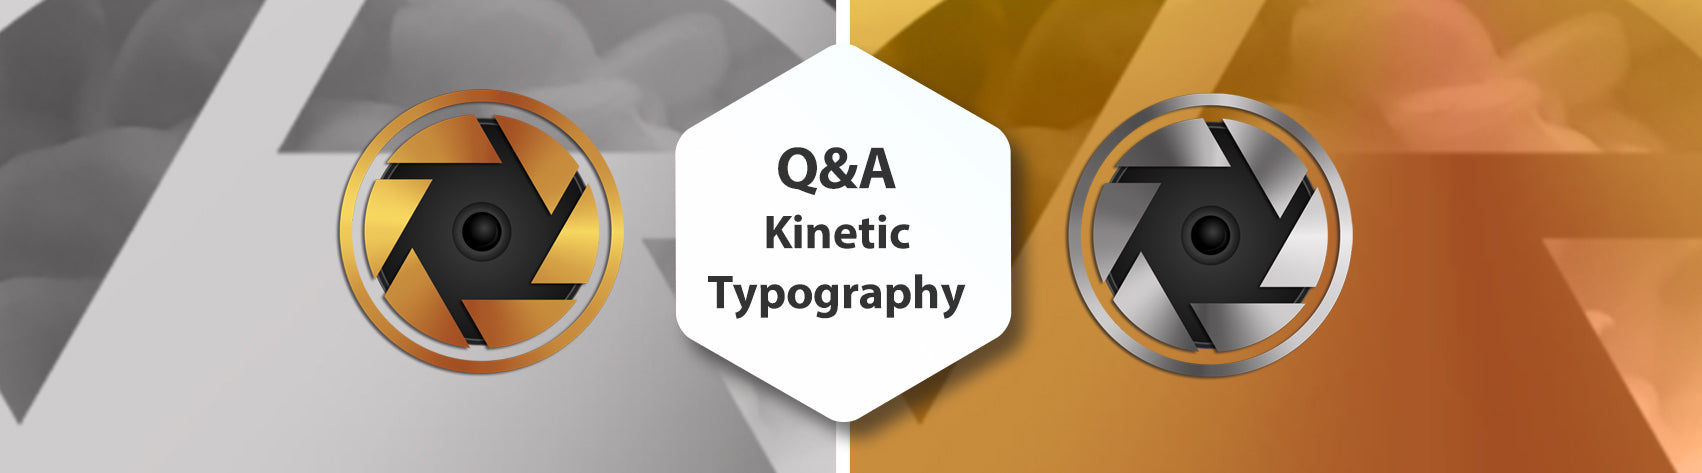 Kinetic Typography Q&A